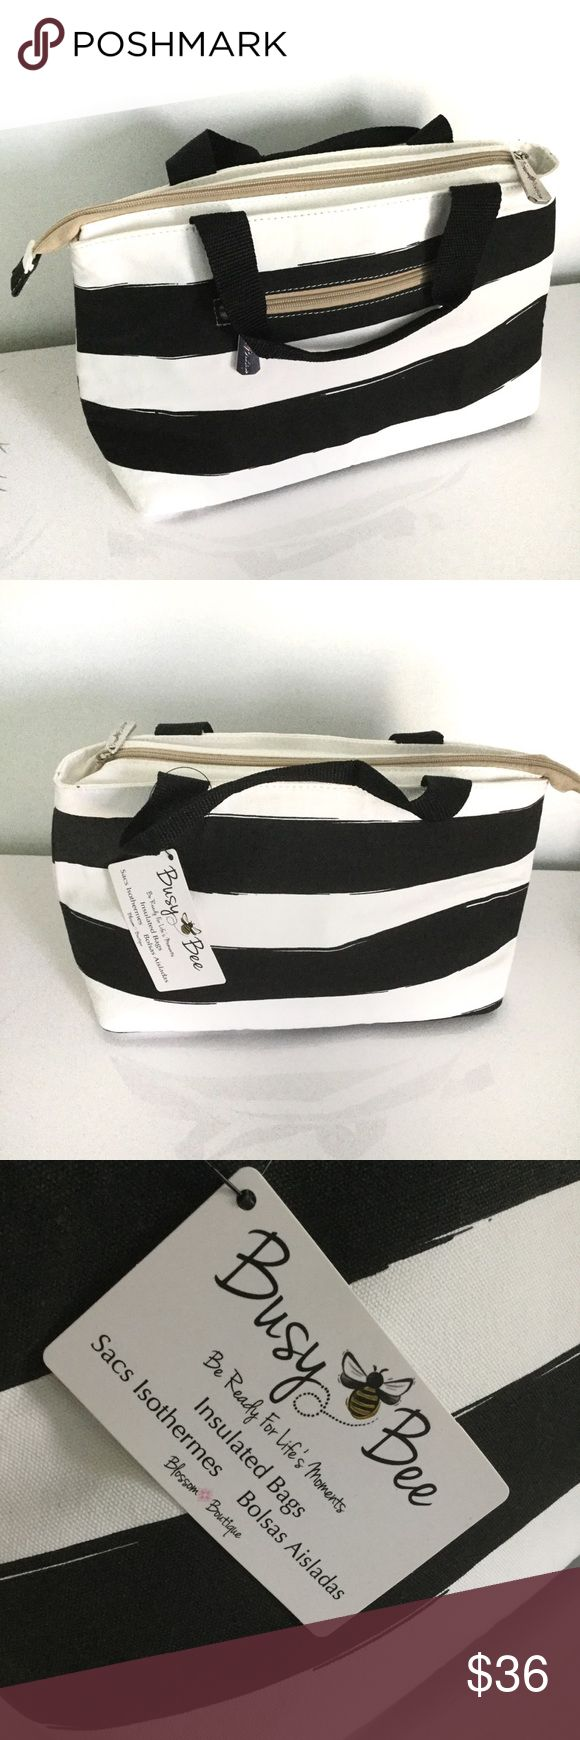 Insulated Lunch Tote Blossom Boutique Busy Bee Striped Lunch Bag. Insulated, keeps items cool for up to 3 hrs. Bags